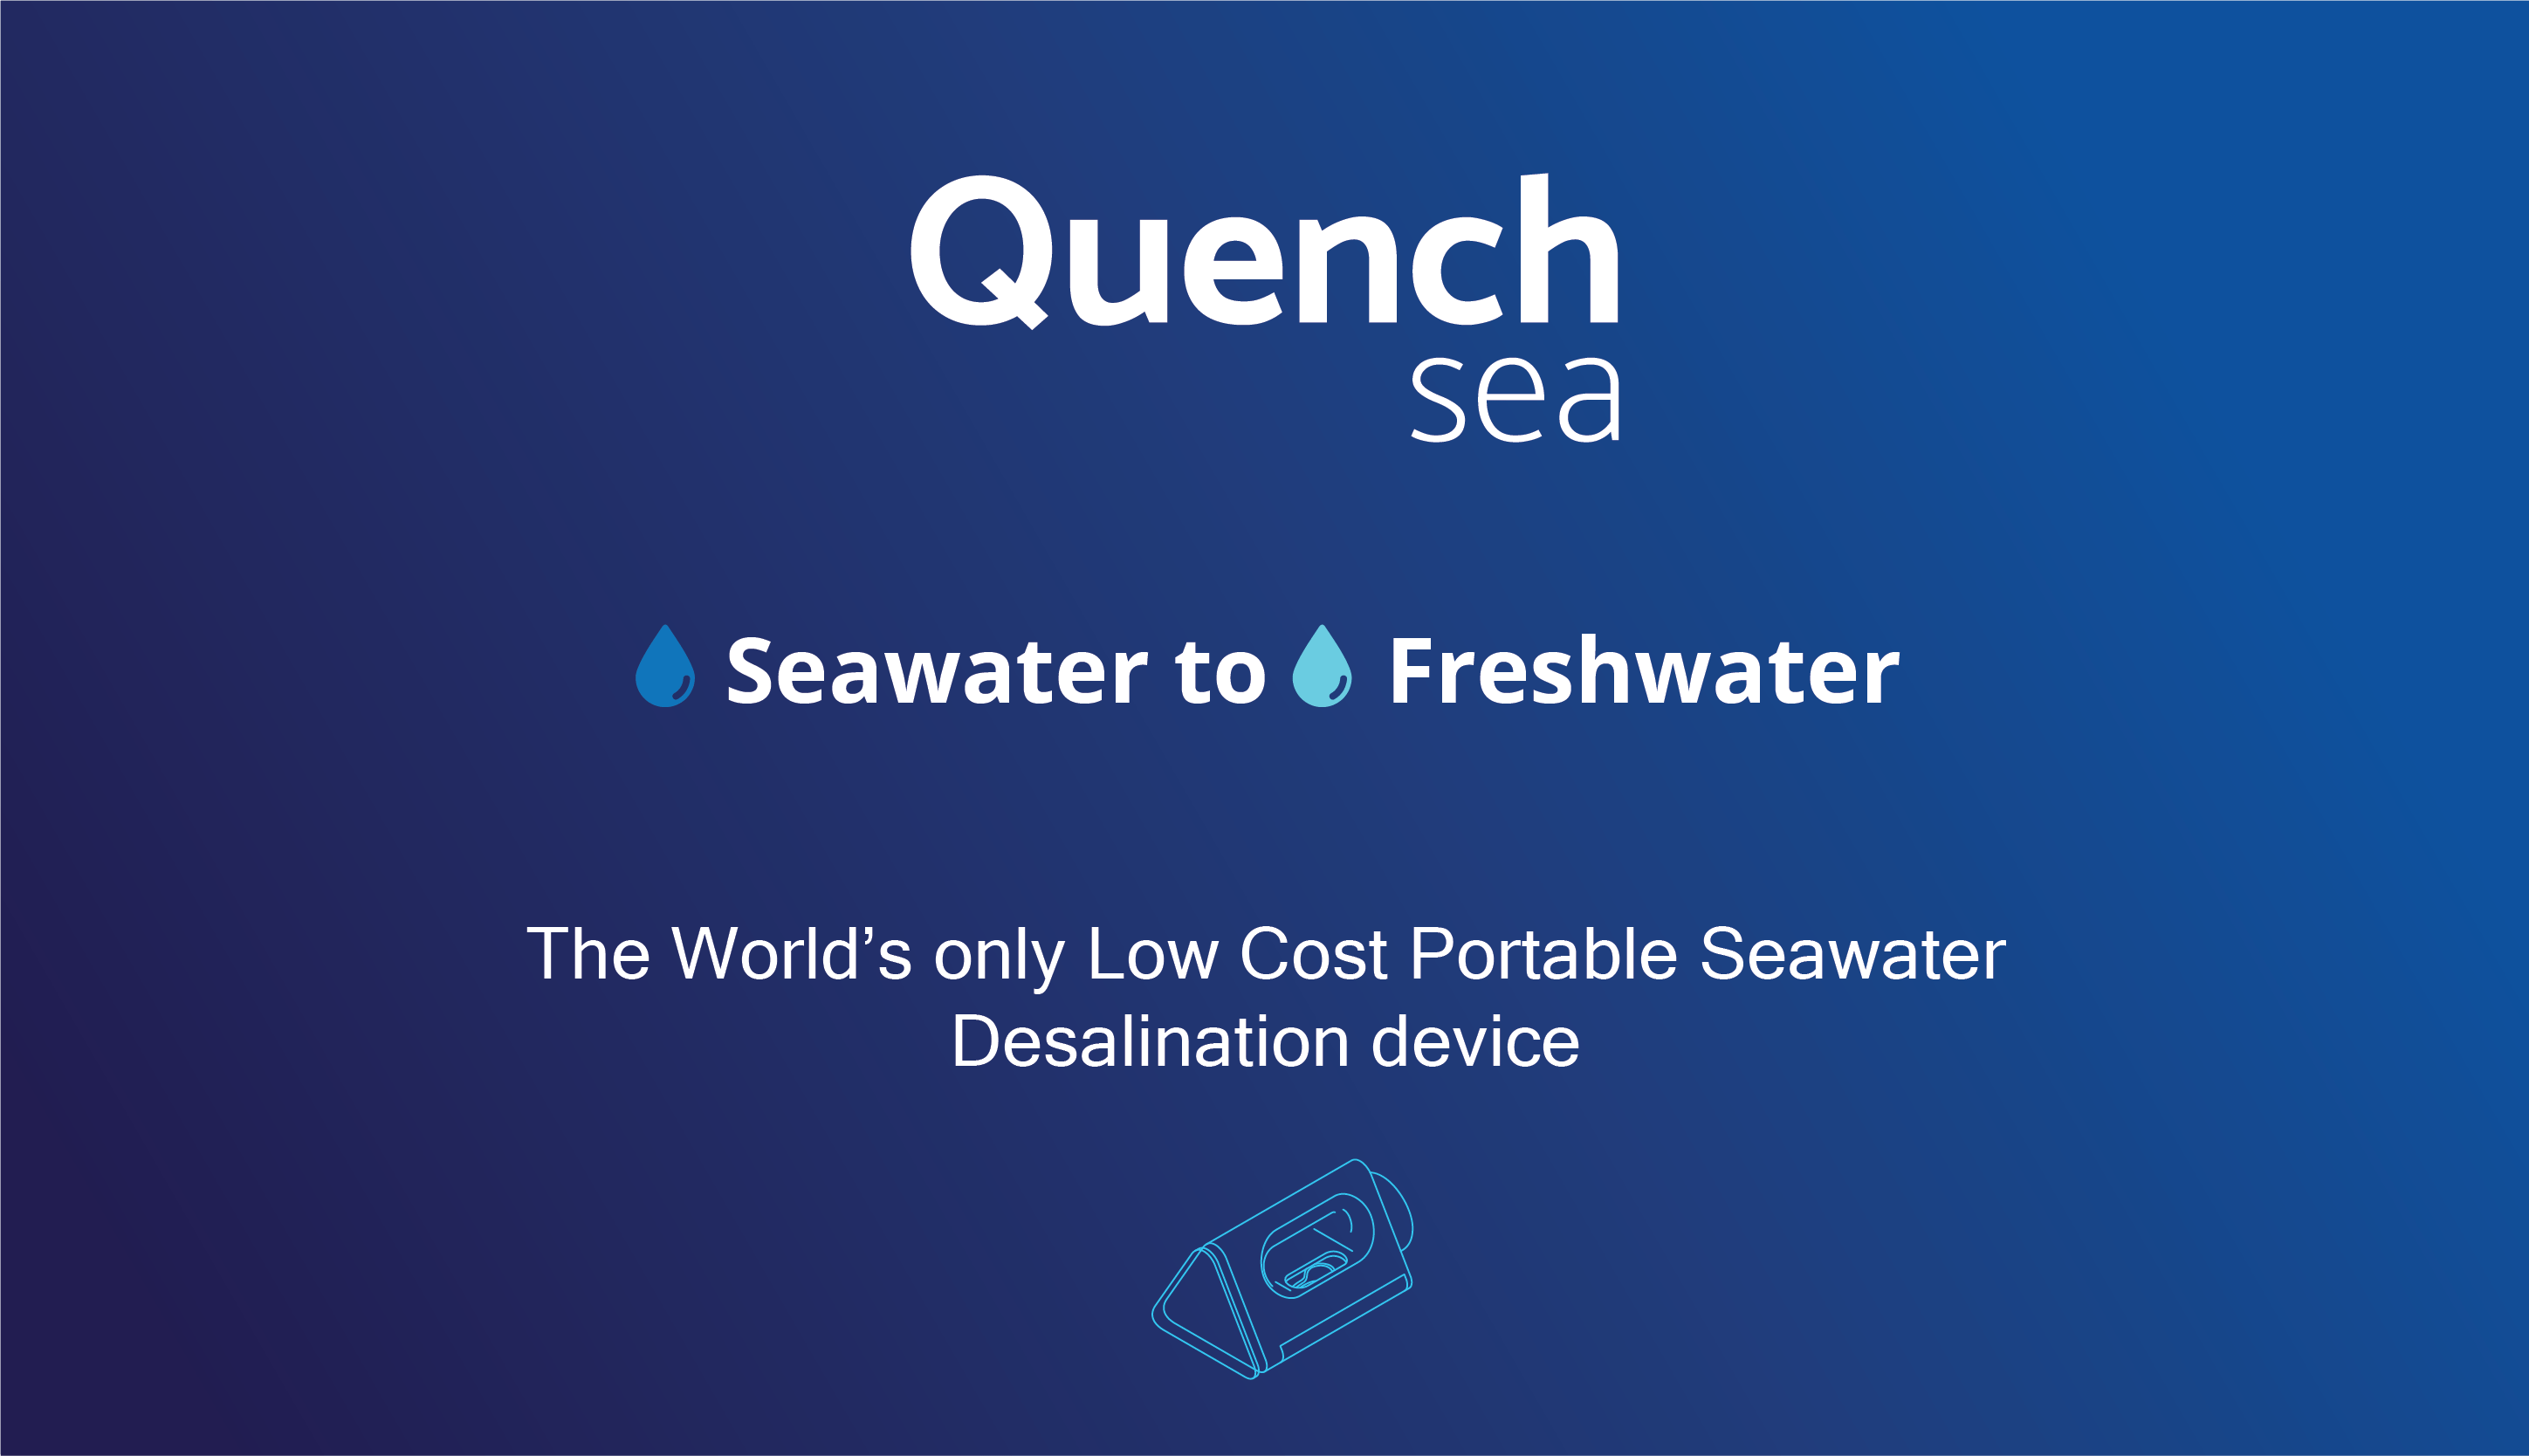 Turn Seawater Into Freshwater